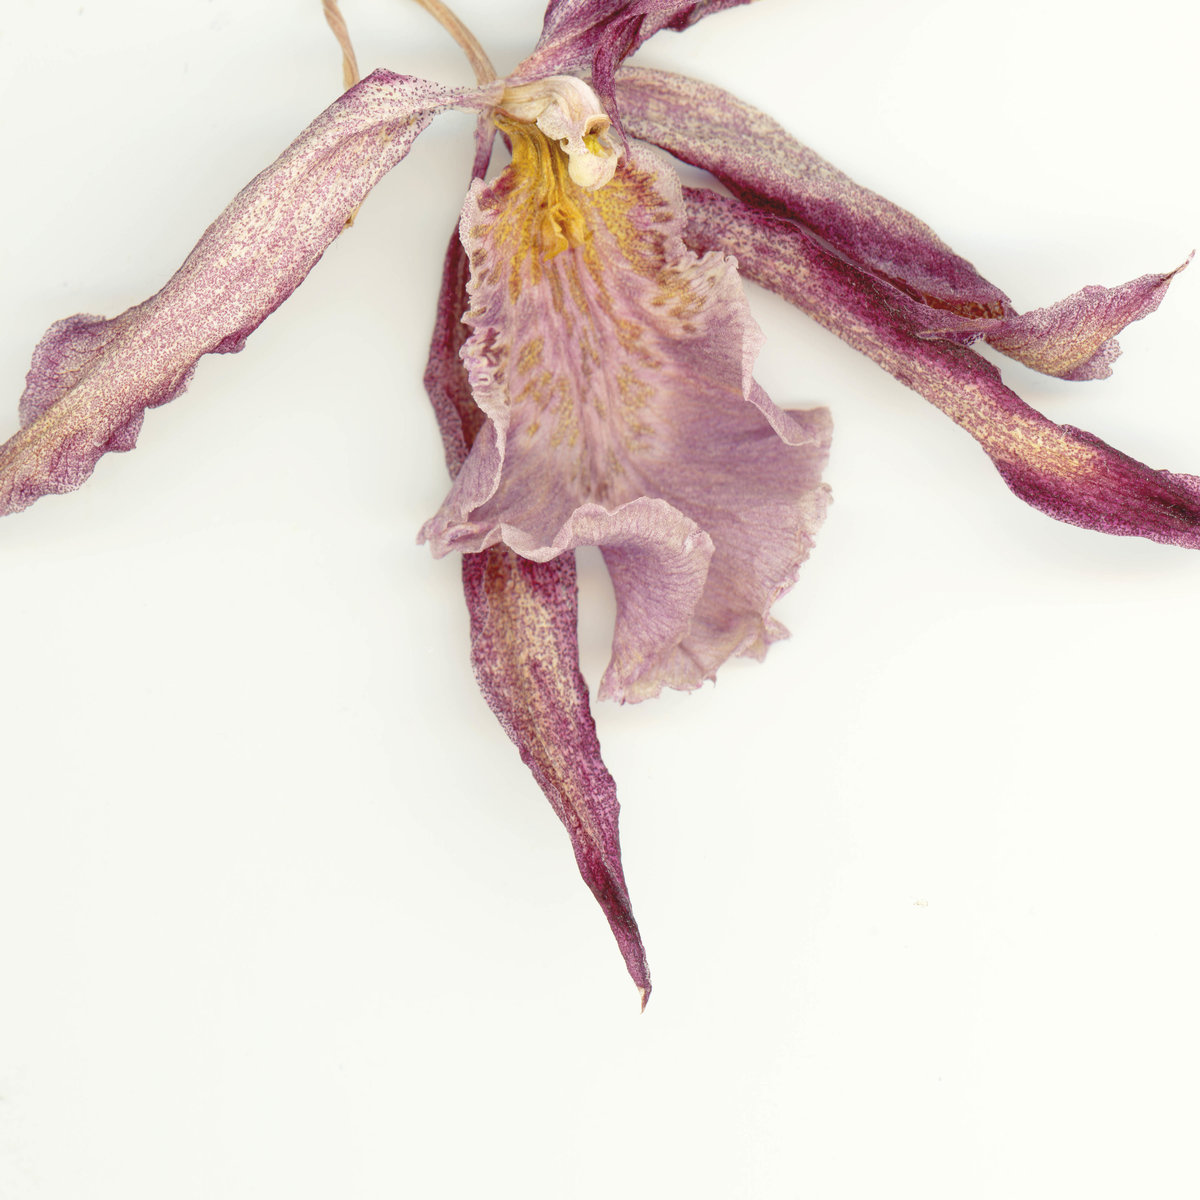 fine-art-photographer-san-francisco-bay-area-camille-rogine-old-orchid015